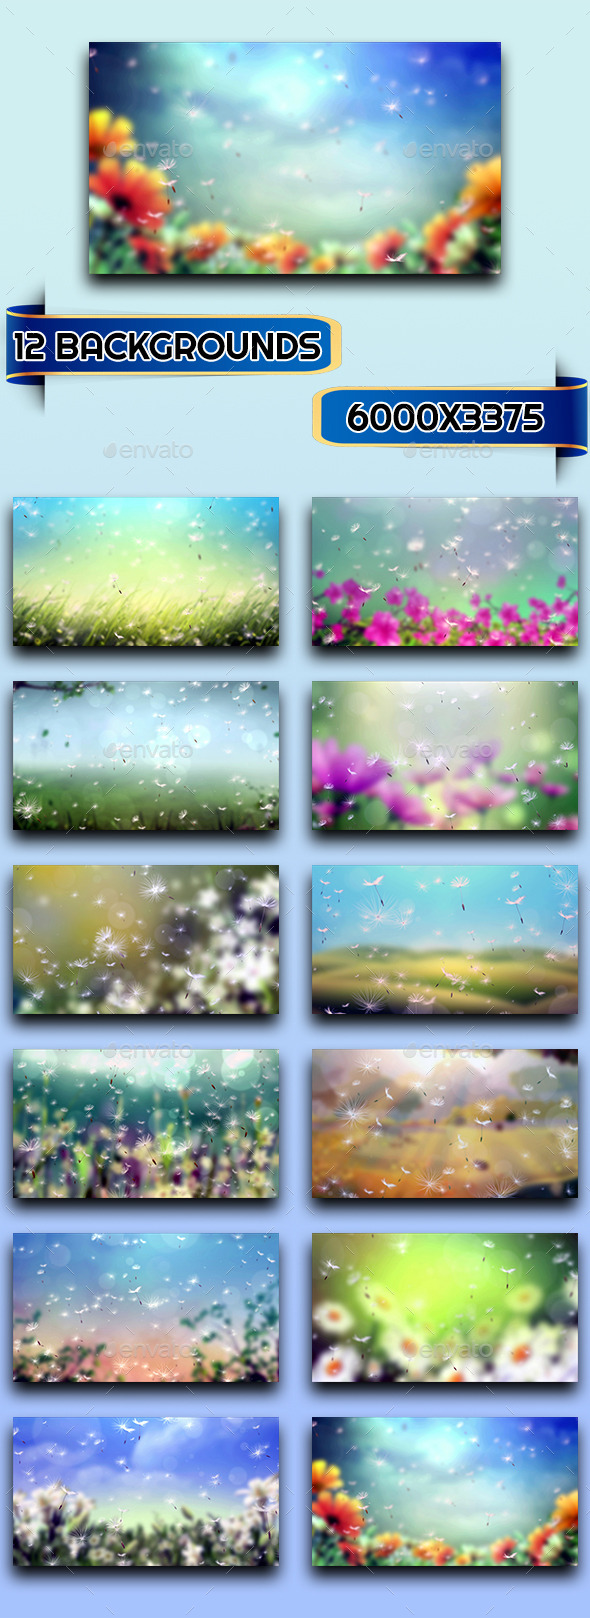 GraphicRiver 12 Dandelion Backgrounds 10874209